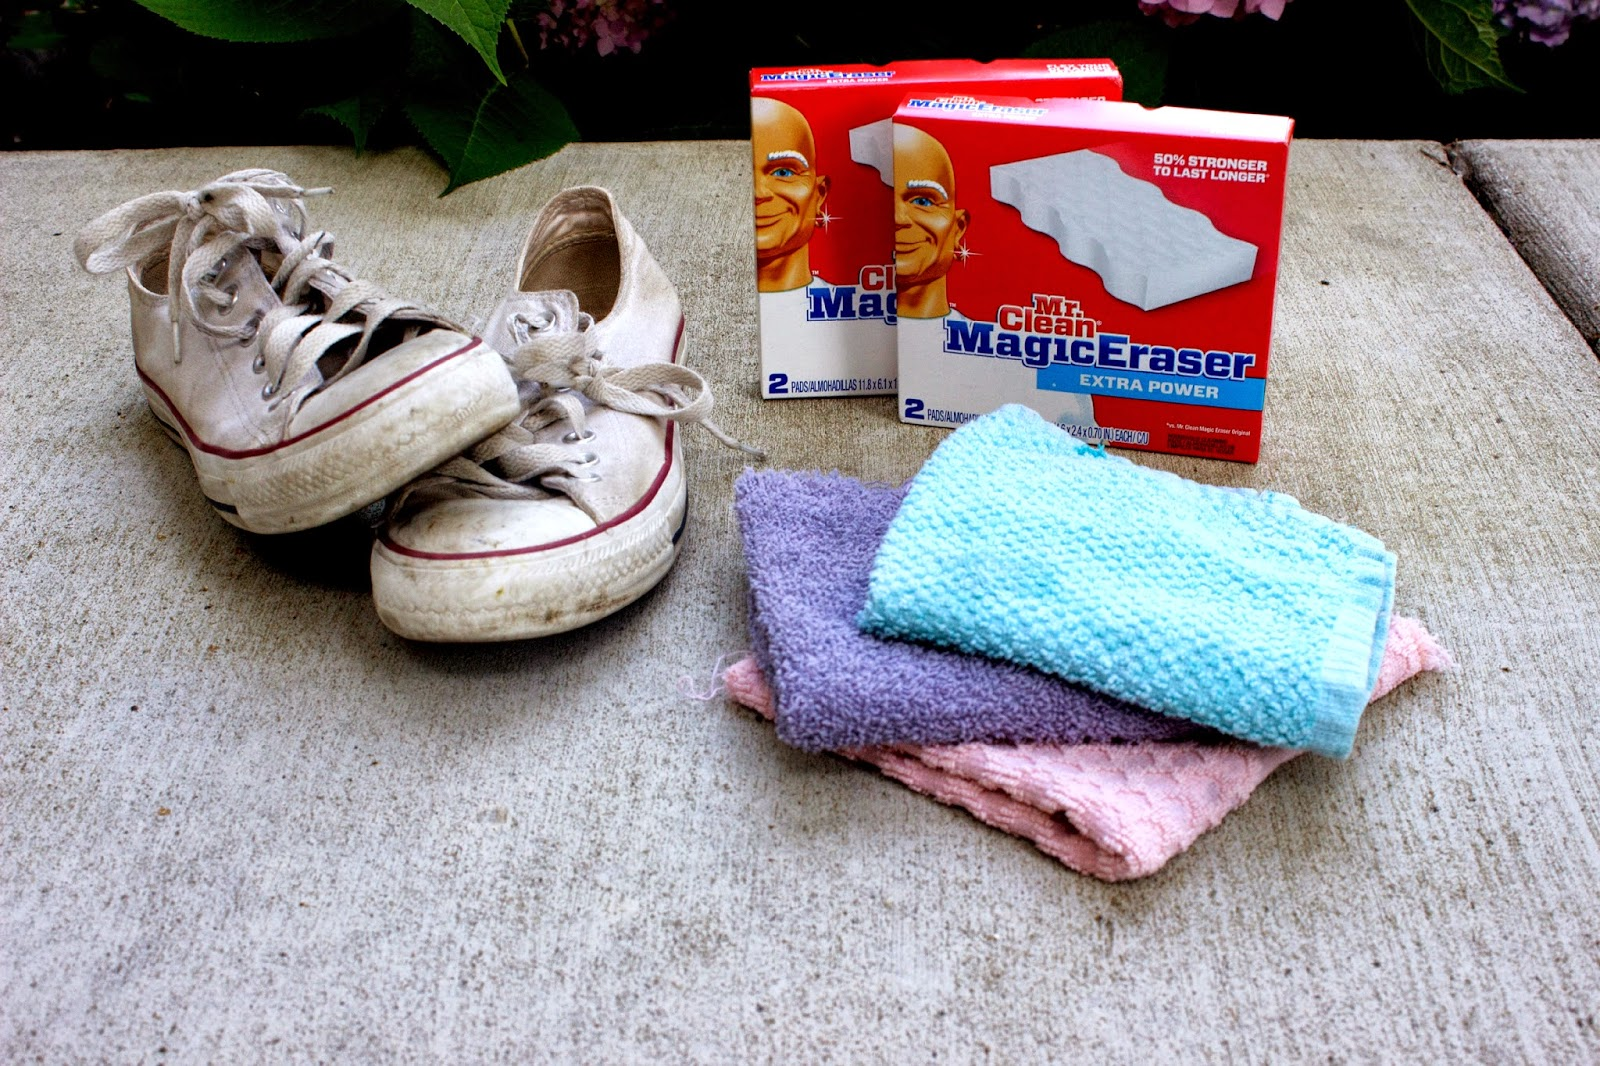 98c26987d7c460 16 Things You Didn t Know a Magic Eraser Could Do